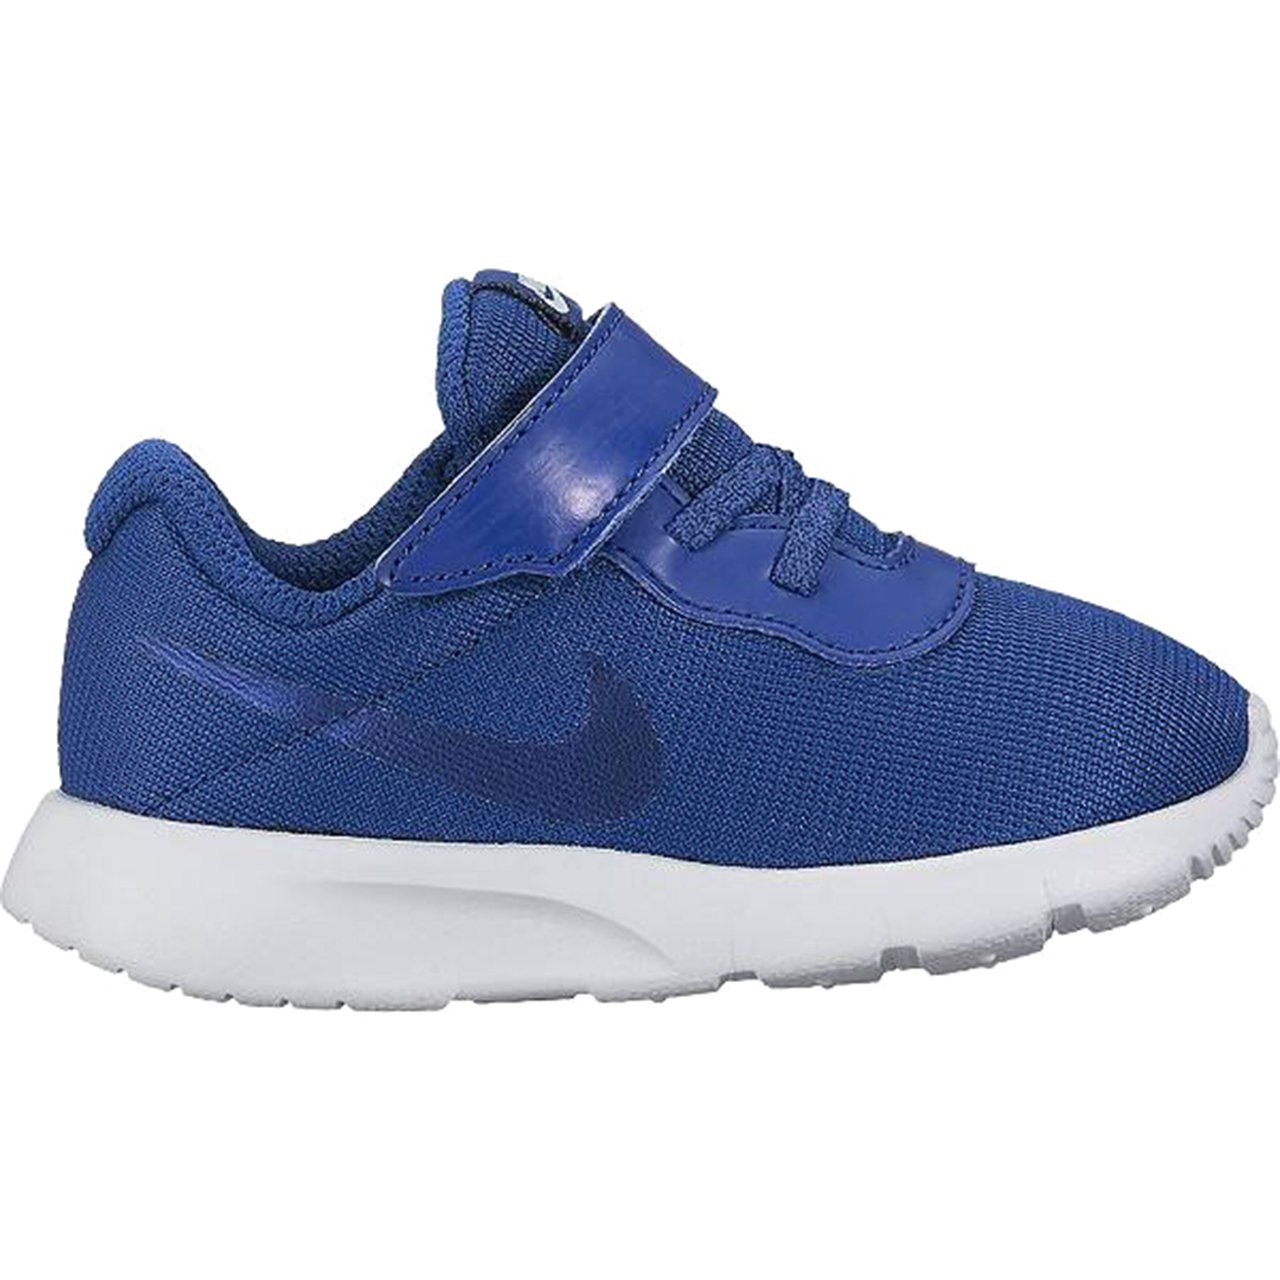 NIKE Boy's Tanjun (TDV) Running Shoes (10 Toddler M, Gym Blue/Gym Blue)